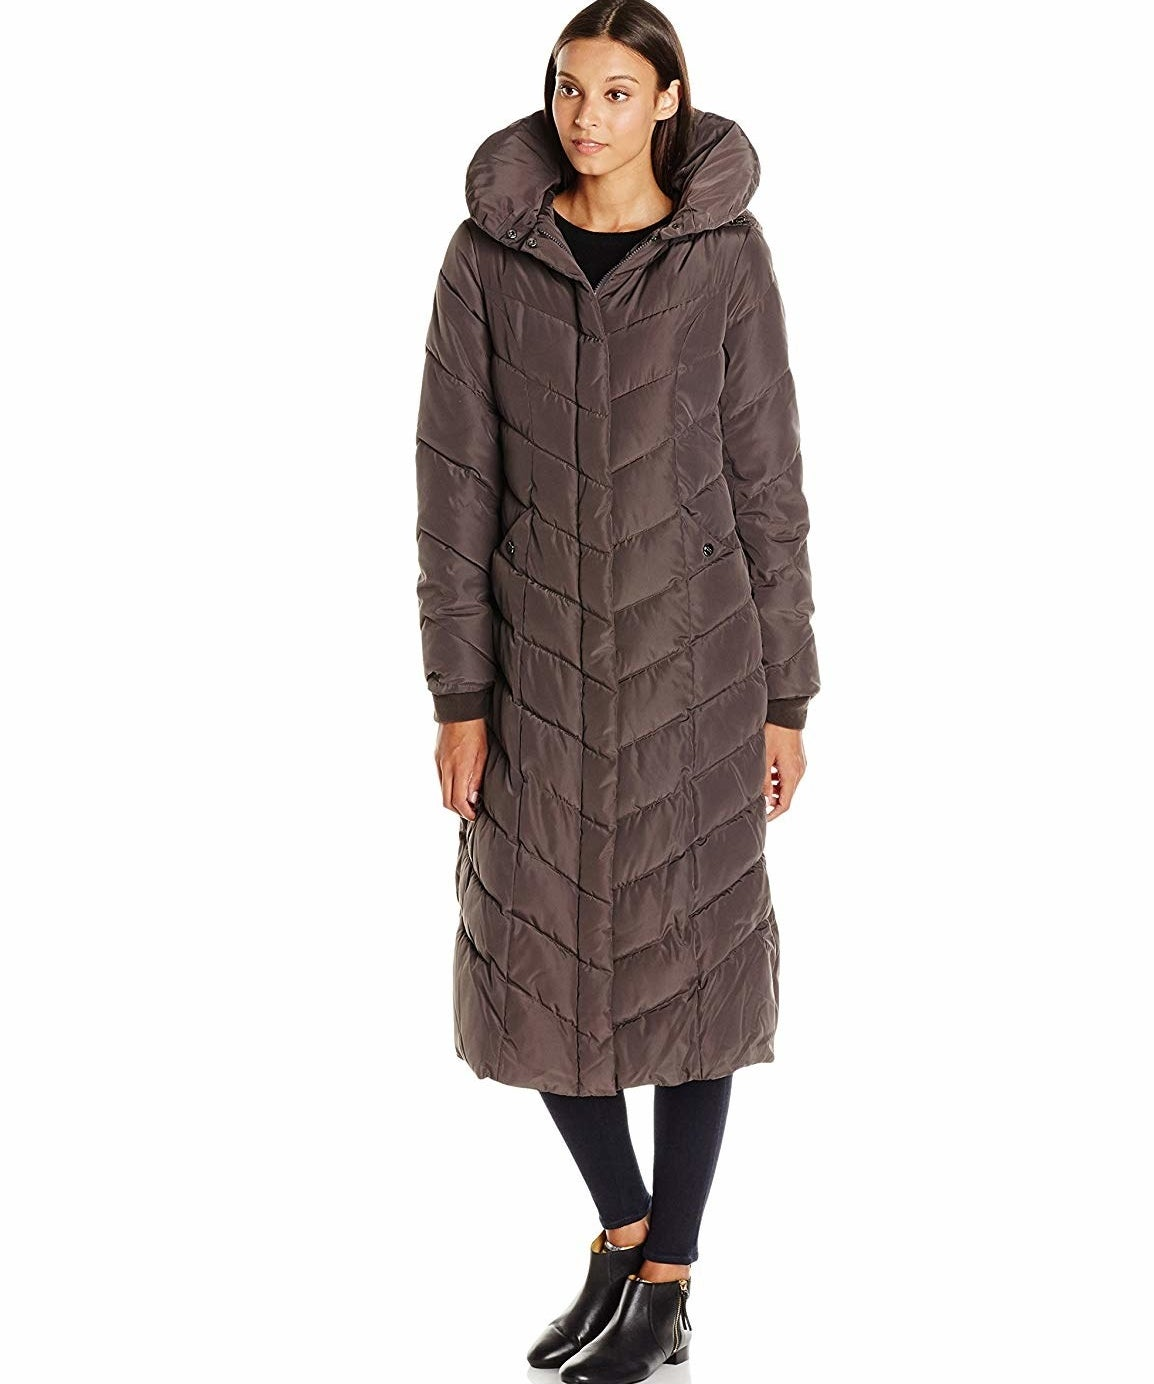 """Promising review: """"Though the fit is a little tight, (if you're between sizes, DO order up a size), the coat is flat out lovely and tremendously WARM! The puffy collar keeps your neck warm, even if you don't have the hood up. The hood fits snugly around your head, so blowing wind doesn't really affect how warm you stay. I HIGHLY recommend this coat."""" —Amazon CustomerPrice: $71.99+ (available in two colors, and sizes S–XL)"""